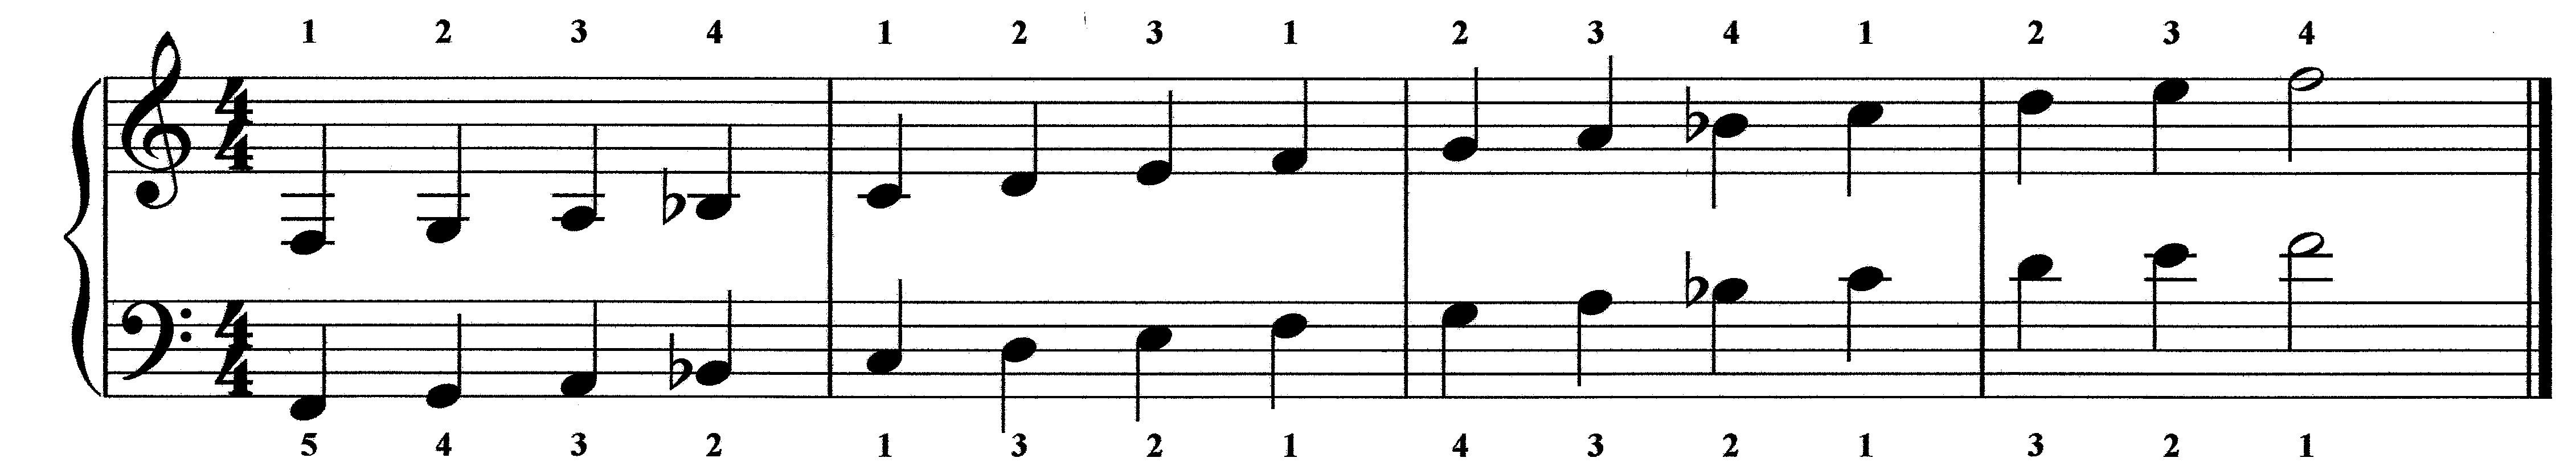 image regarding Printable Piano Scales known as Hefty Scales